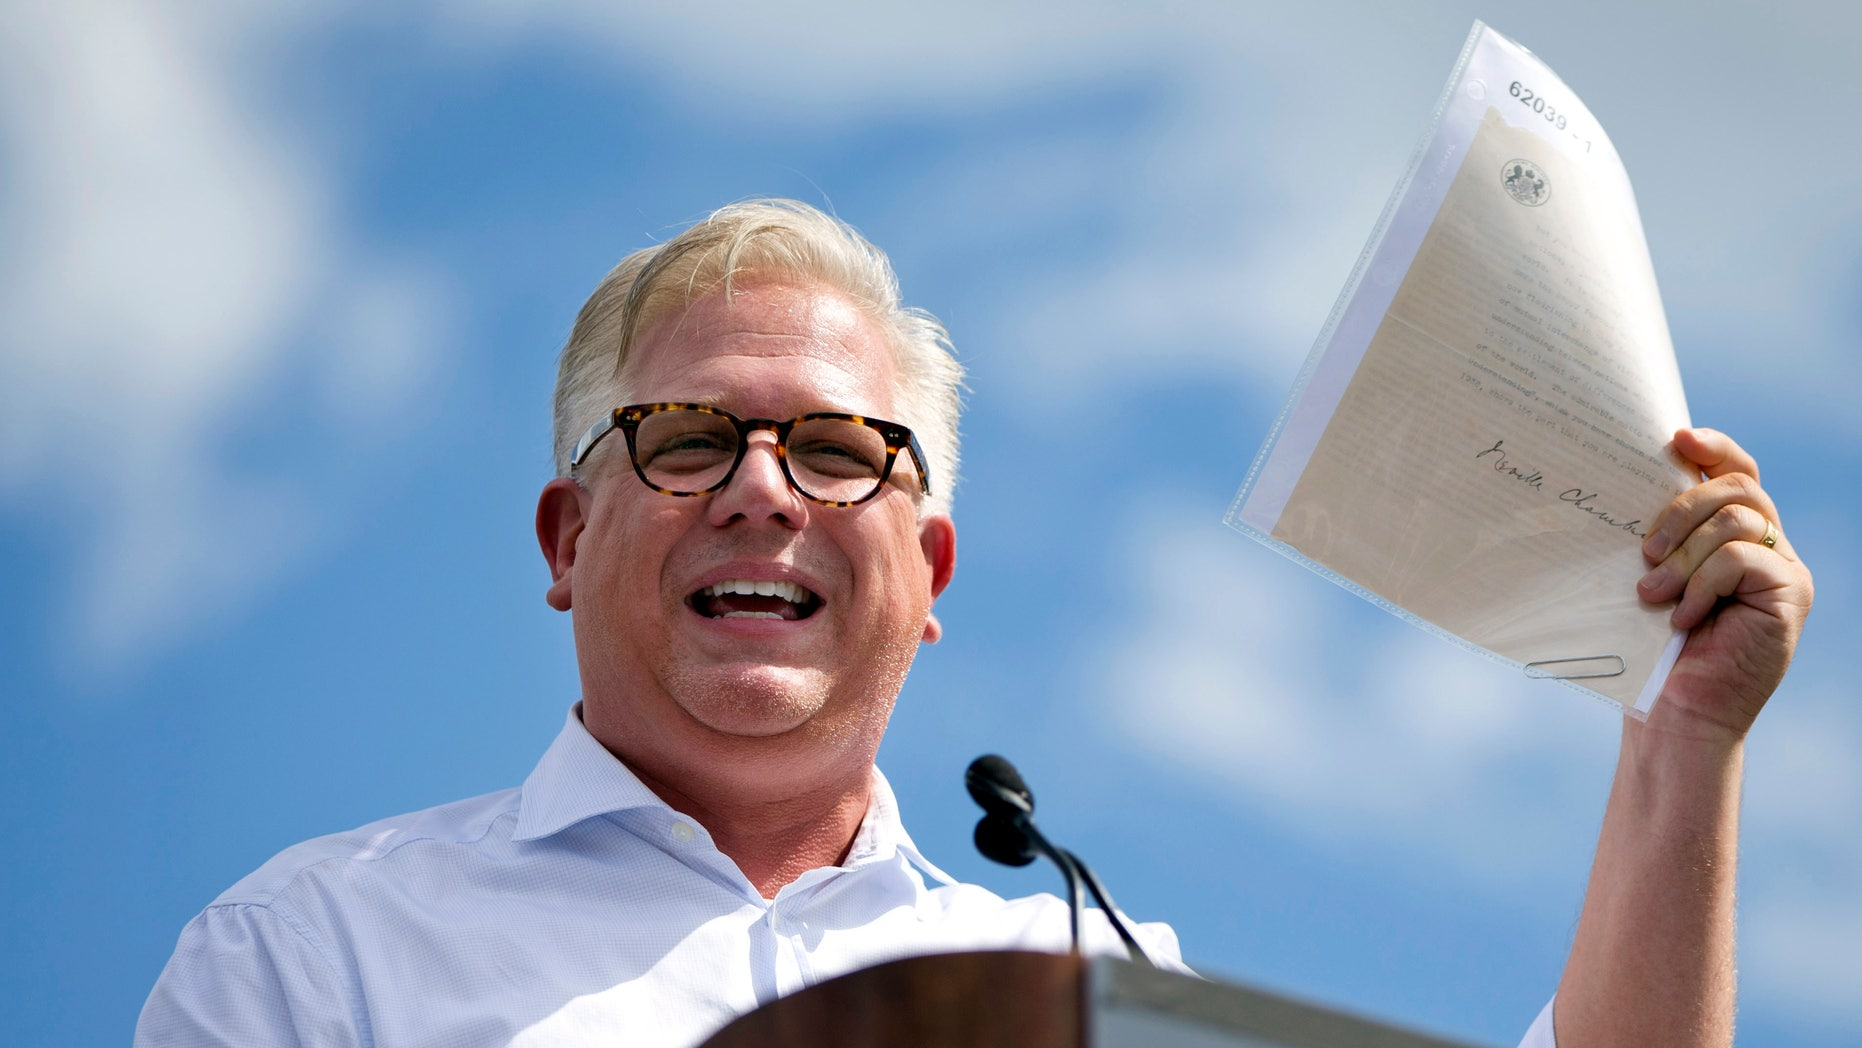 FILE - In this Wednesday Sept. 9, 2015, file photo, radio host Glenn Beck speaks during a Tea Party rally against the Iran deal on the West Lawn of the Capitol in Washington. SiriusXM announced May 31, 2016, that Beck was being suspended over his comments in a May 25, 2016, interview with author Brad Thor. (AP Photo/Jacquelyn Martin, File)